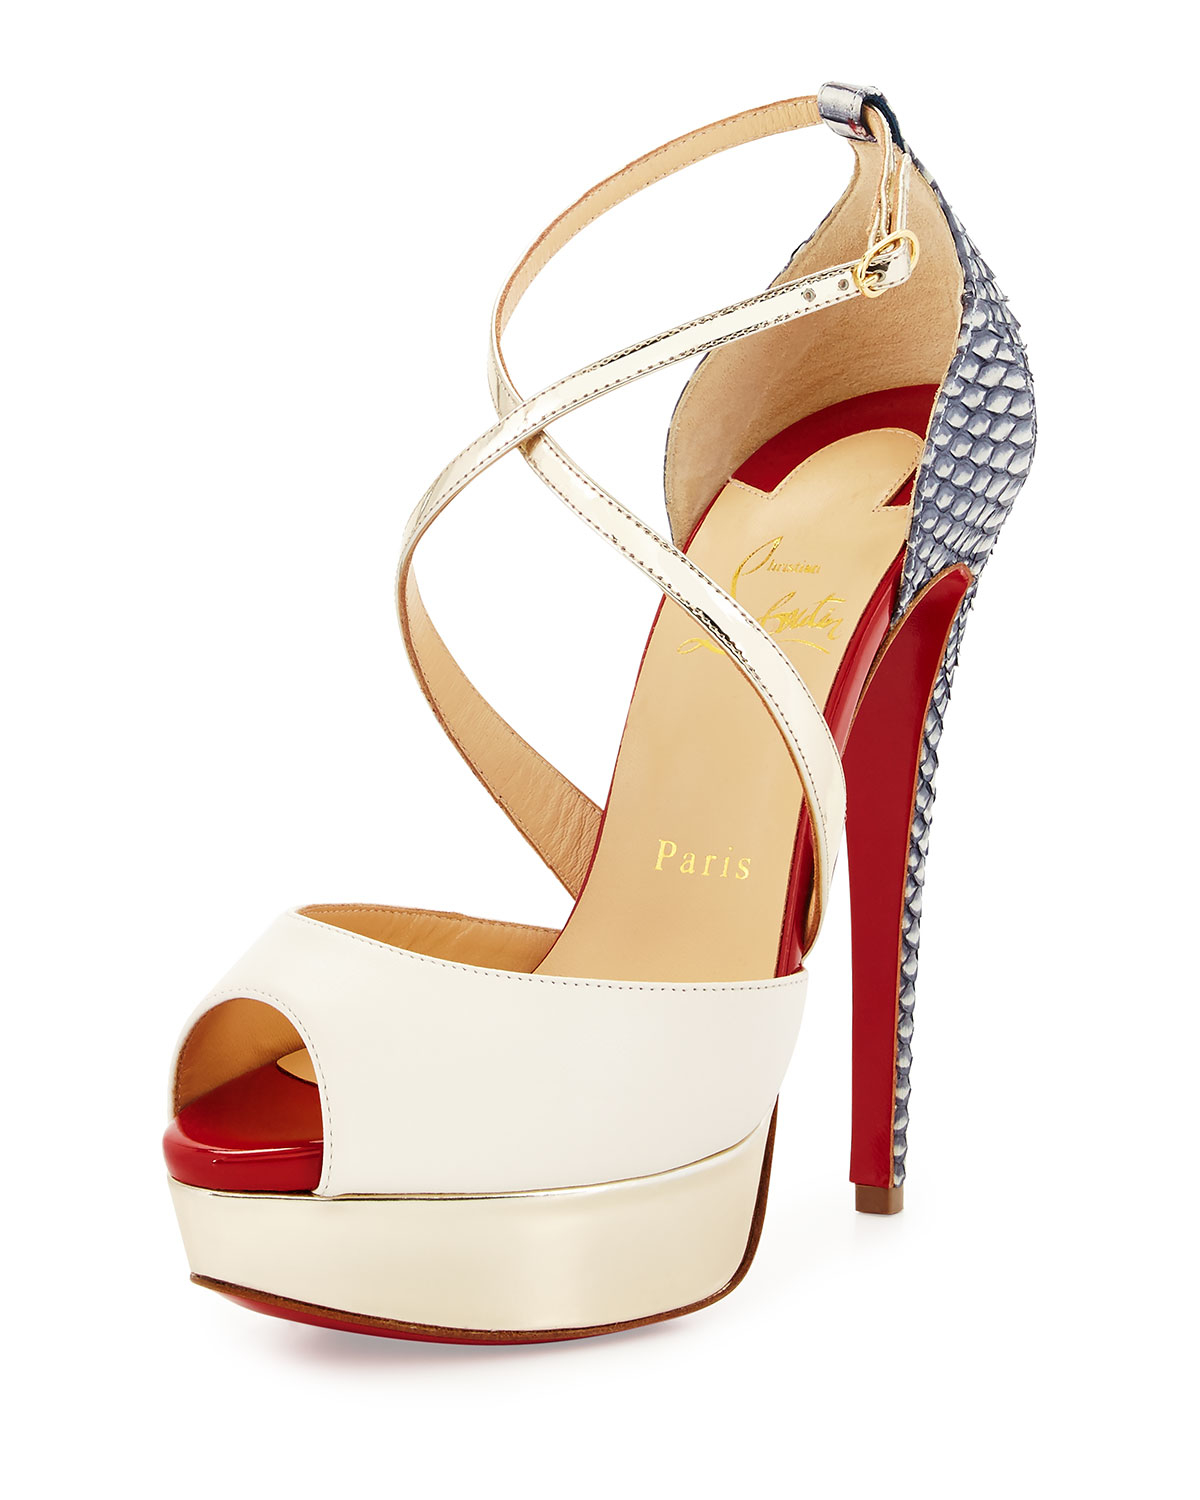 christian louboutin multi strap sandals | cosmetics digital ...